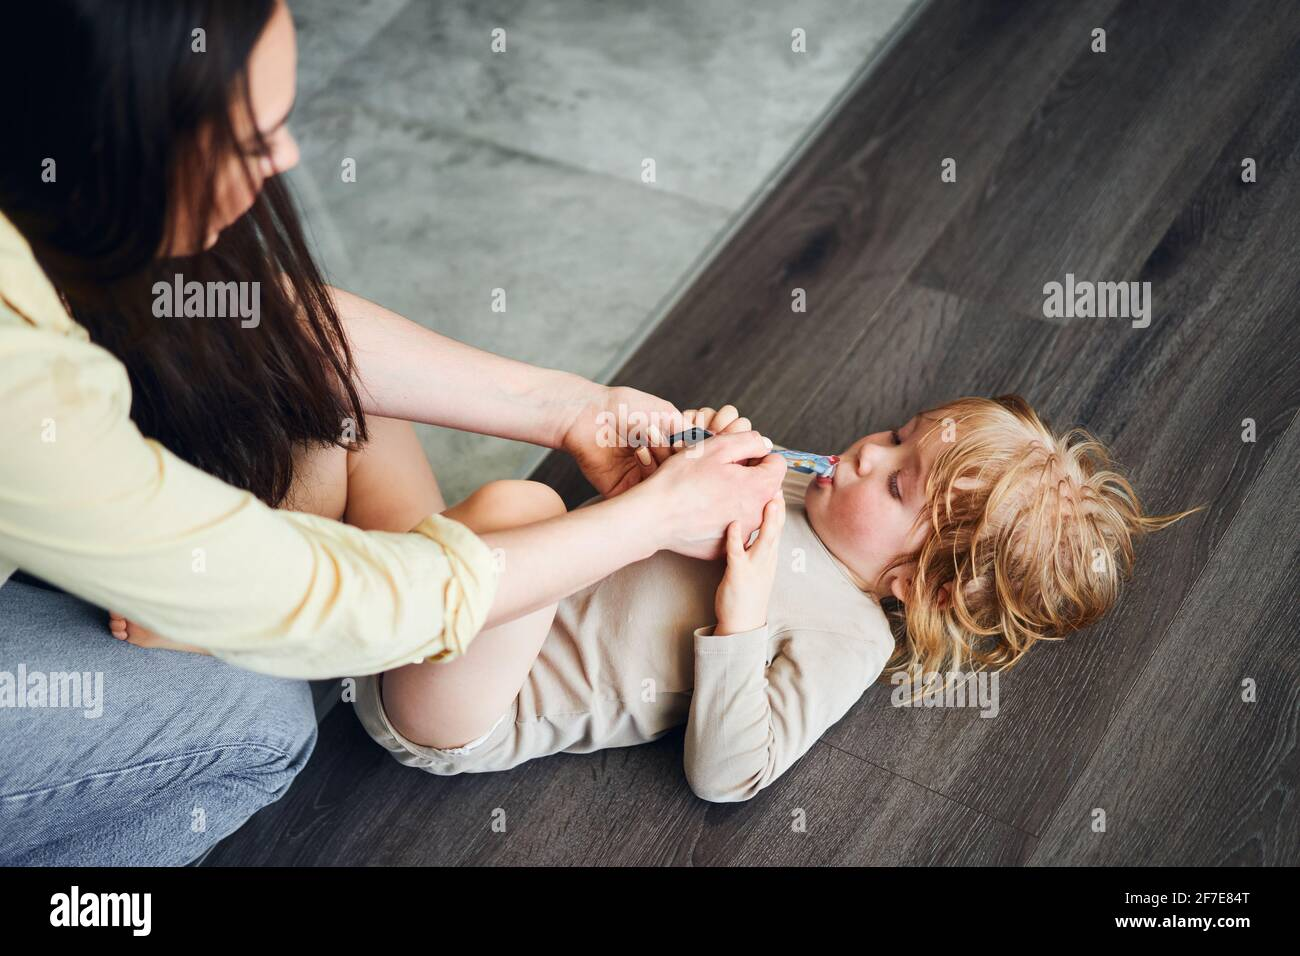 woman feeding baby food to her son, who is lying on the floor Stock Photo